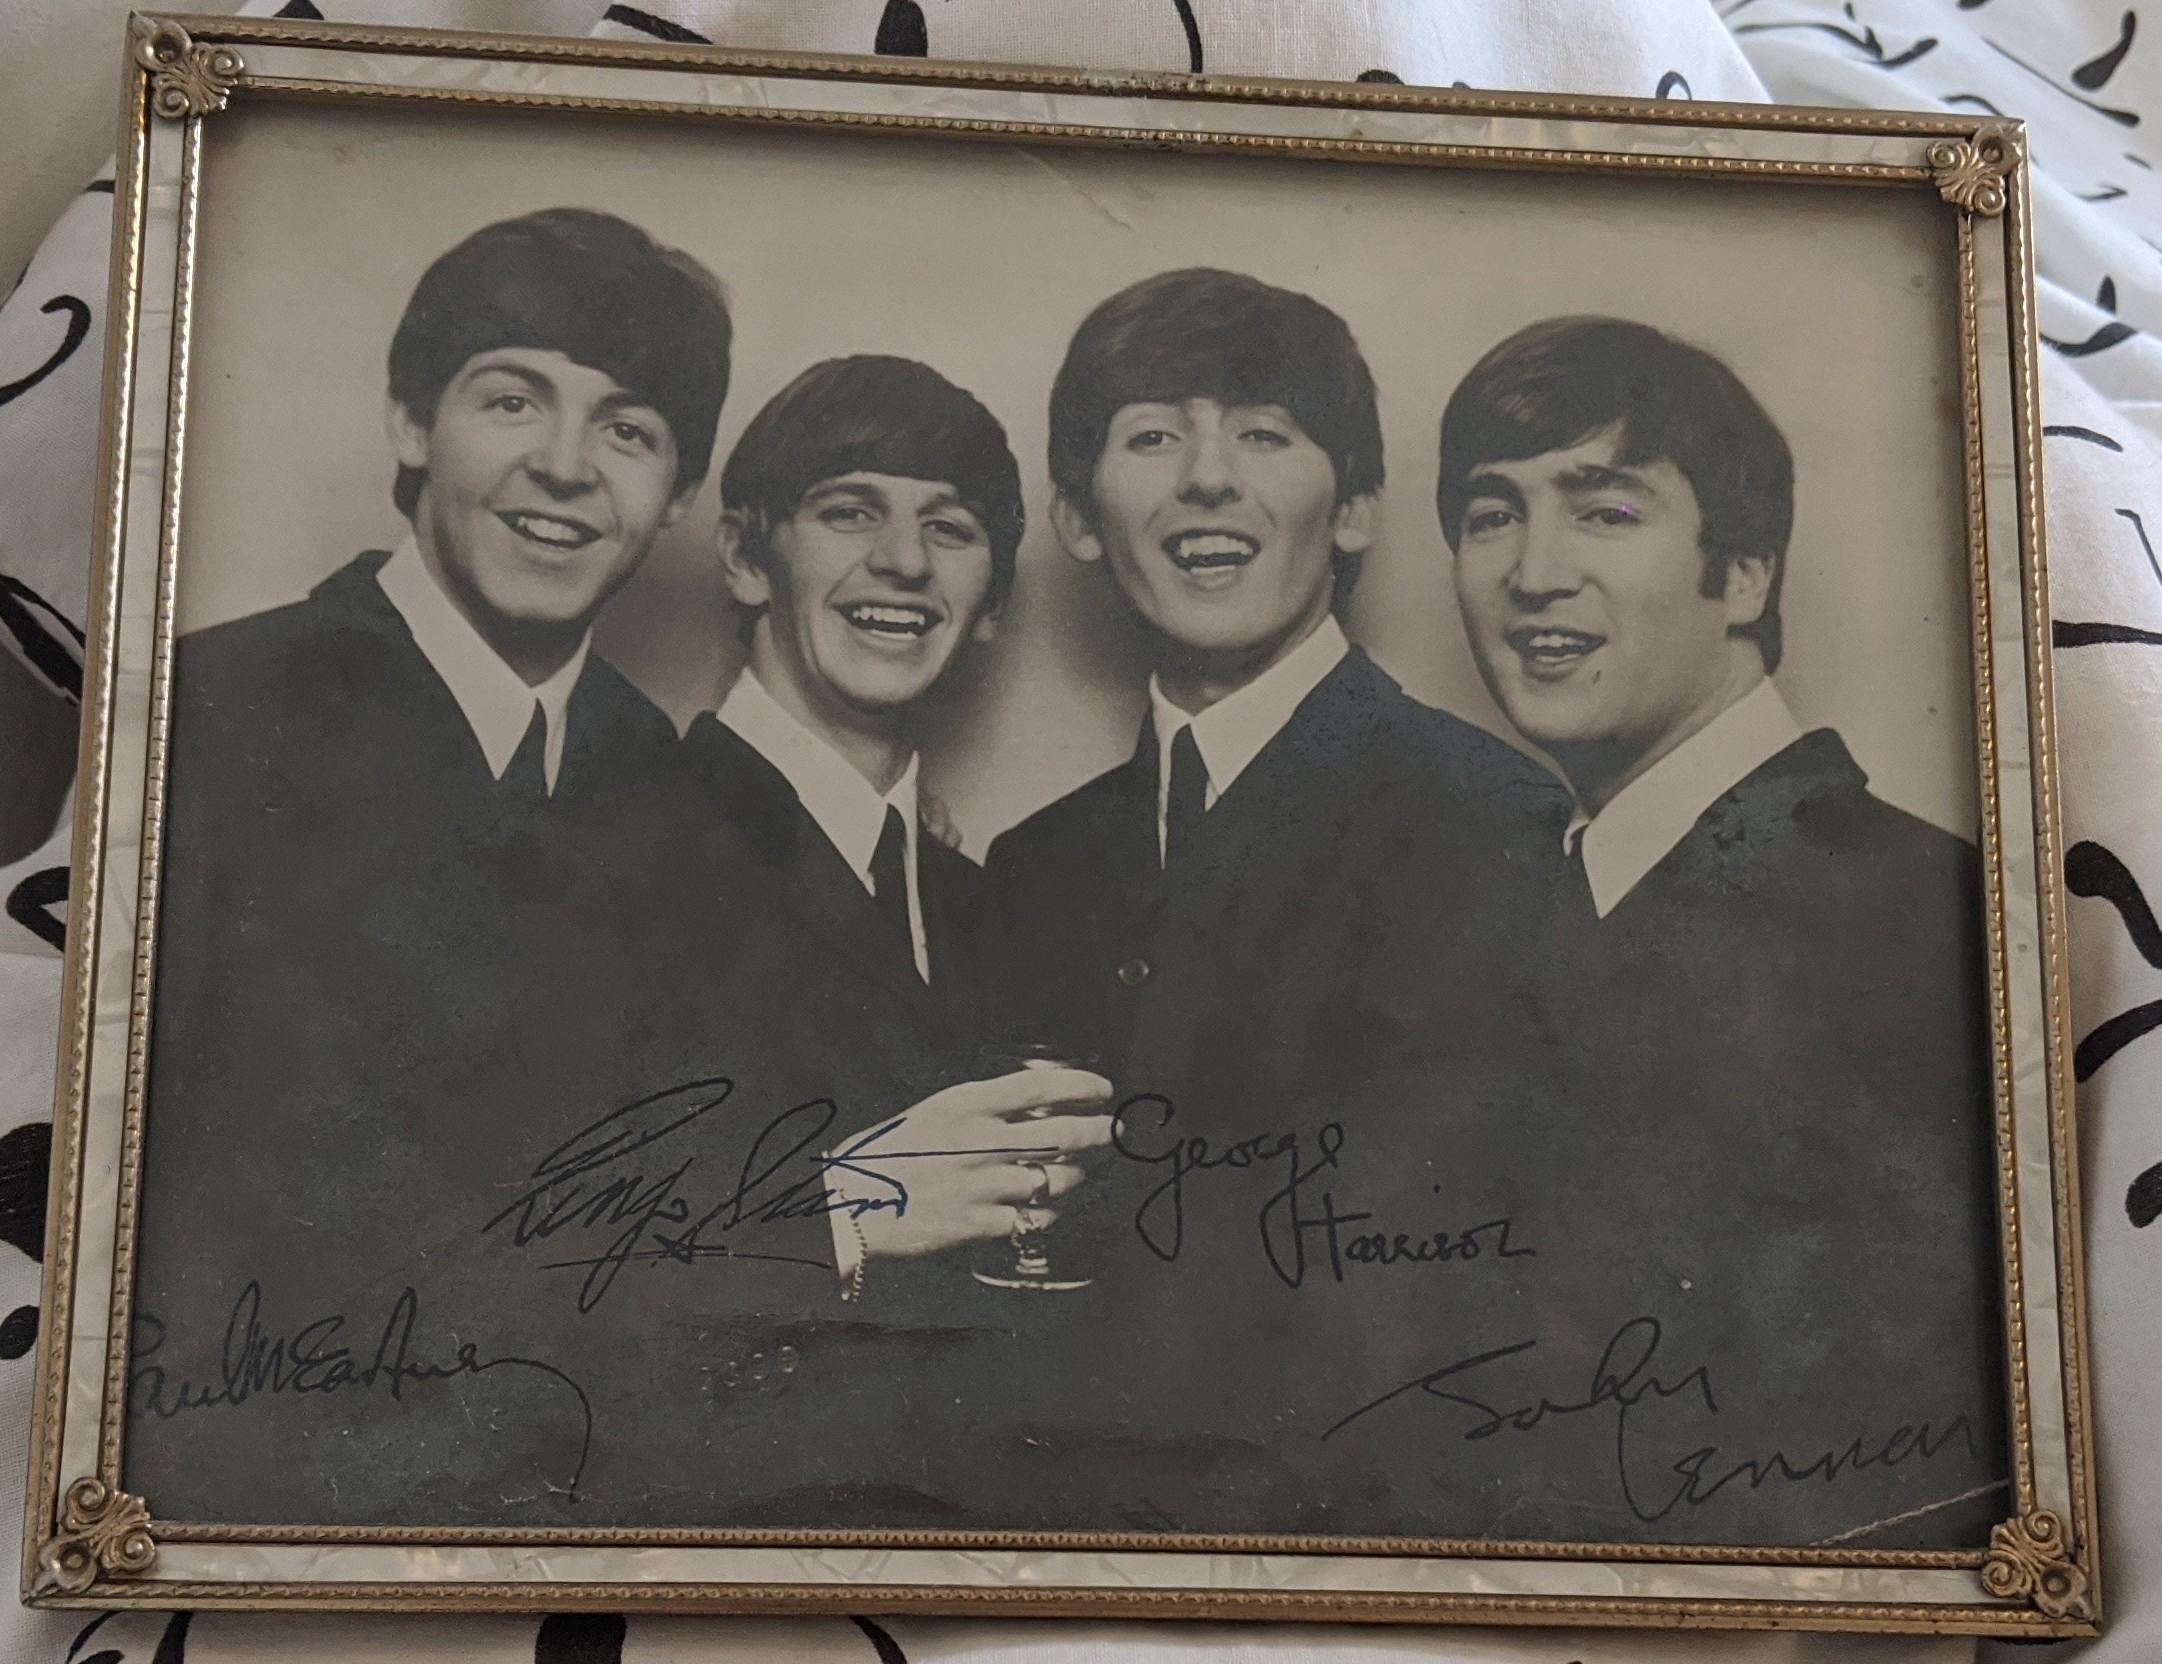 Framed photograph of the Beatles during their younger days.